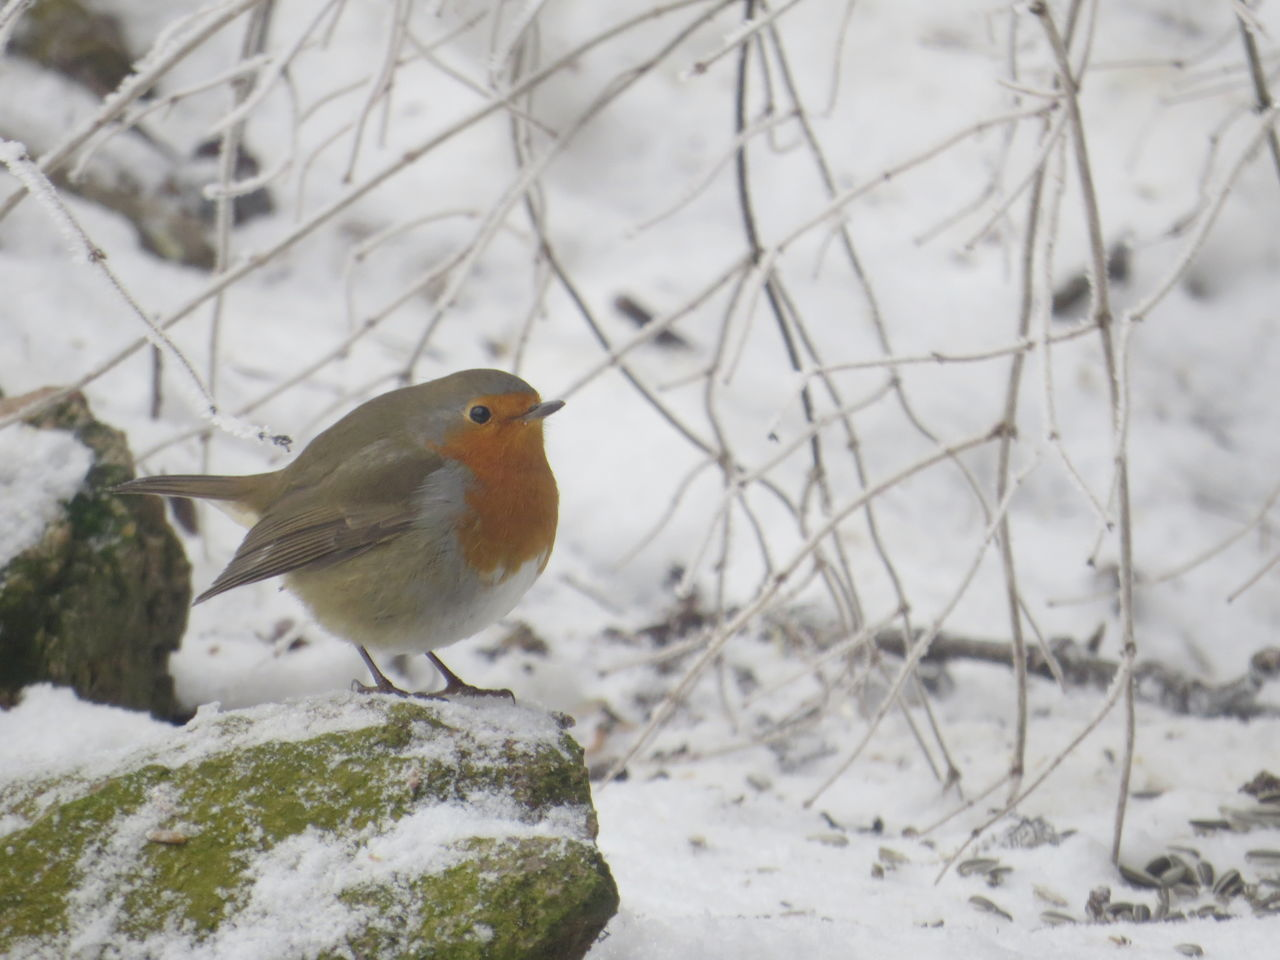 Robin Animal Wildlife Animals Bird Cold Temperature Nature No People Outdoors Perching Robin Snowy Winter Taking Photos From My Point Of View Capture The Moment Animal Themes Snow Animals In The Wild